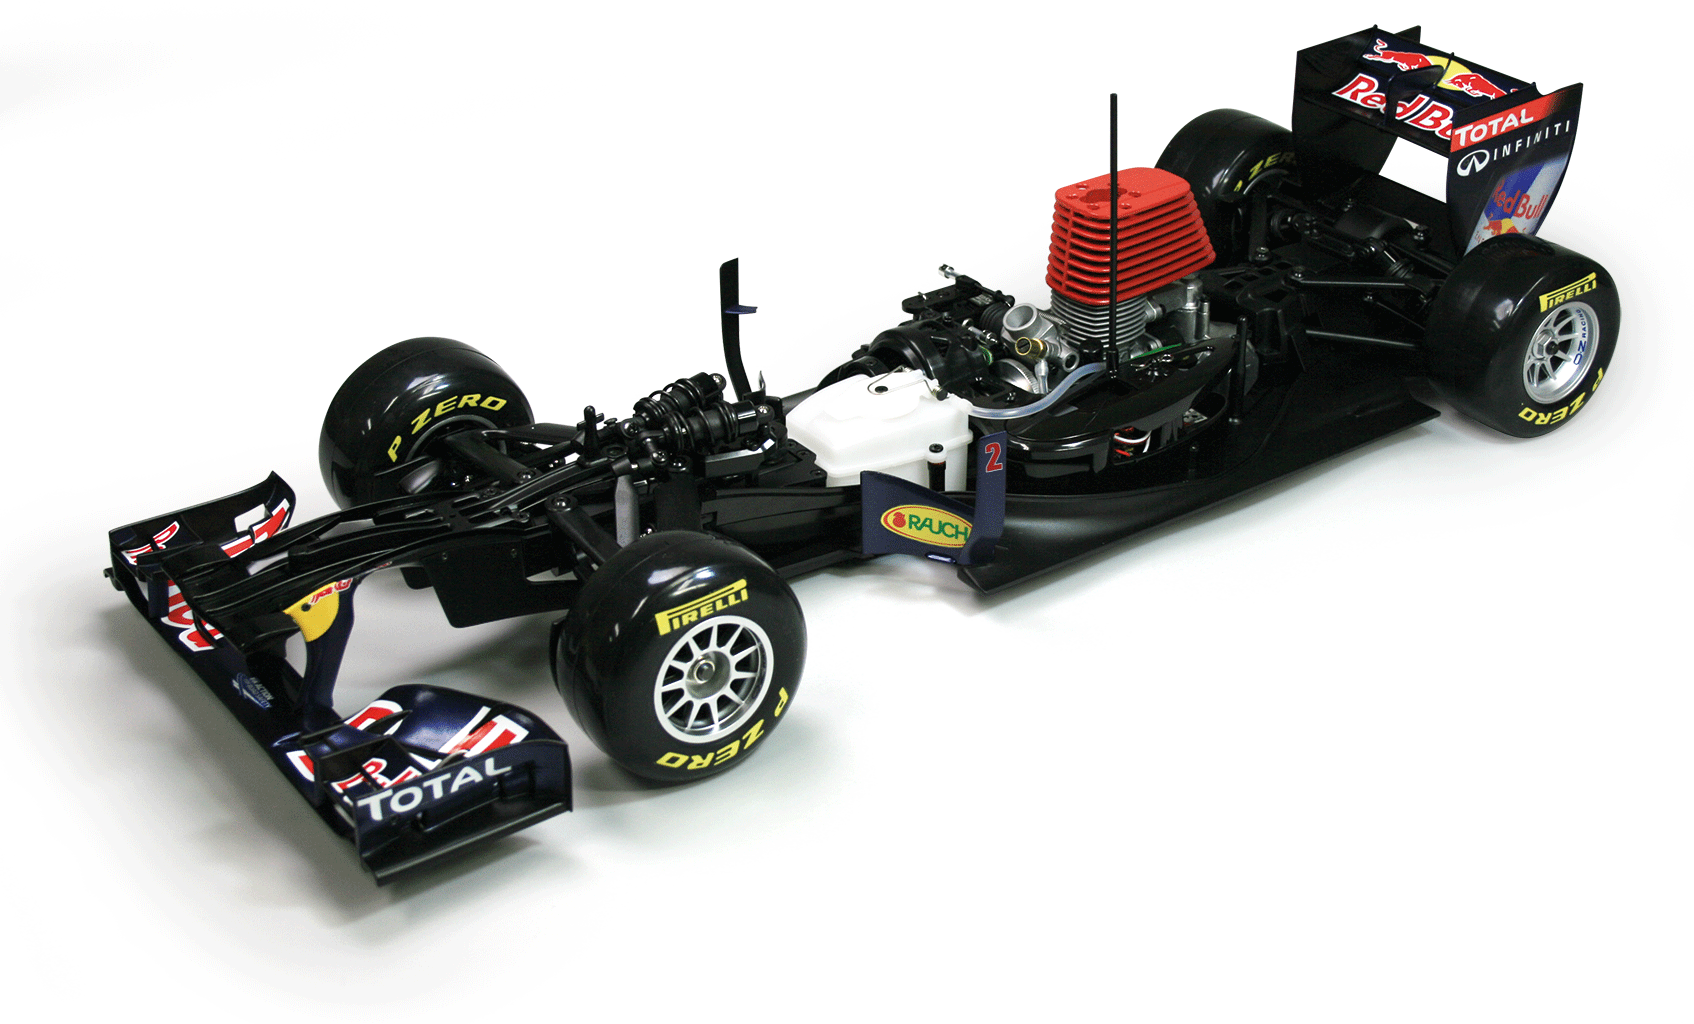 rc car kits to build with Build Rb7 F1 Red Bull on Build Senna Mclaren Mp4 4 additionally Build The Lamborghini Huracan in addition Build Ford Mustang Shelby besides dirtmodeler additionally Build The Senna Mclaren.